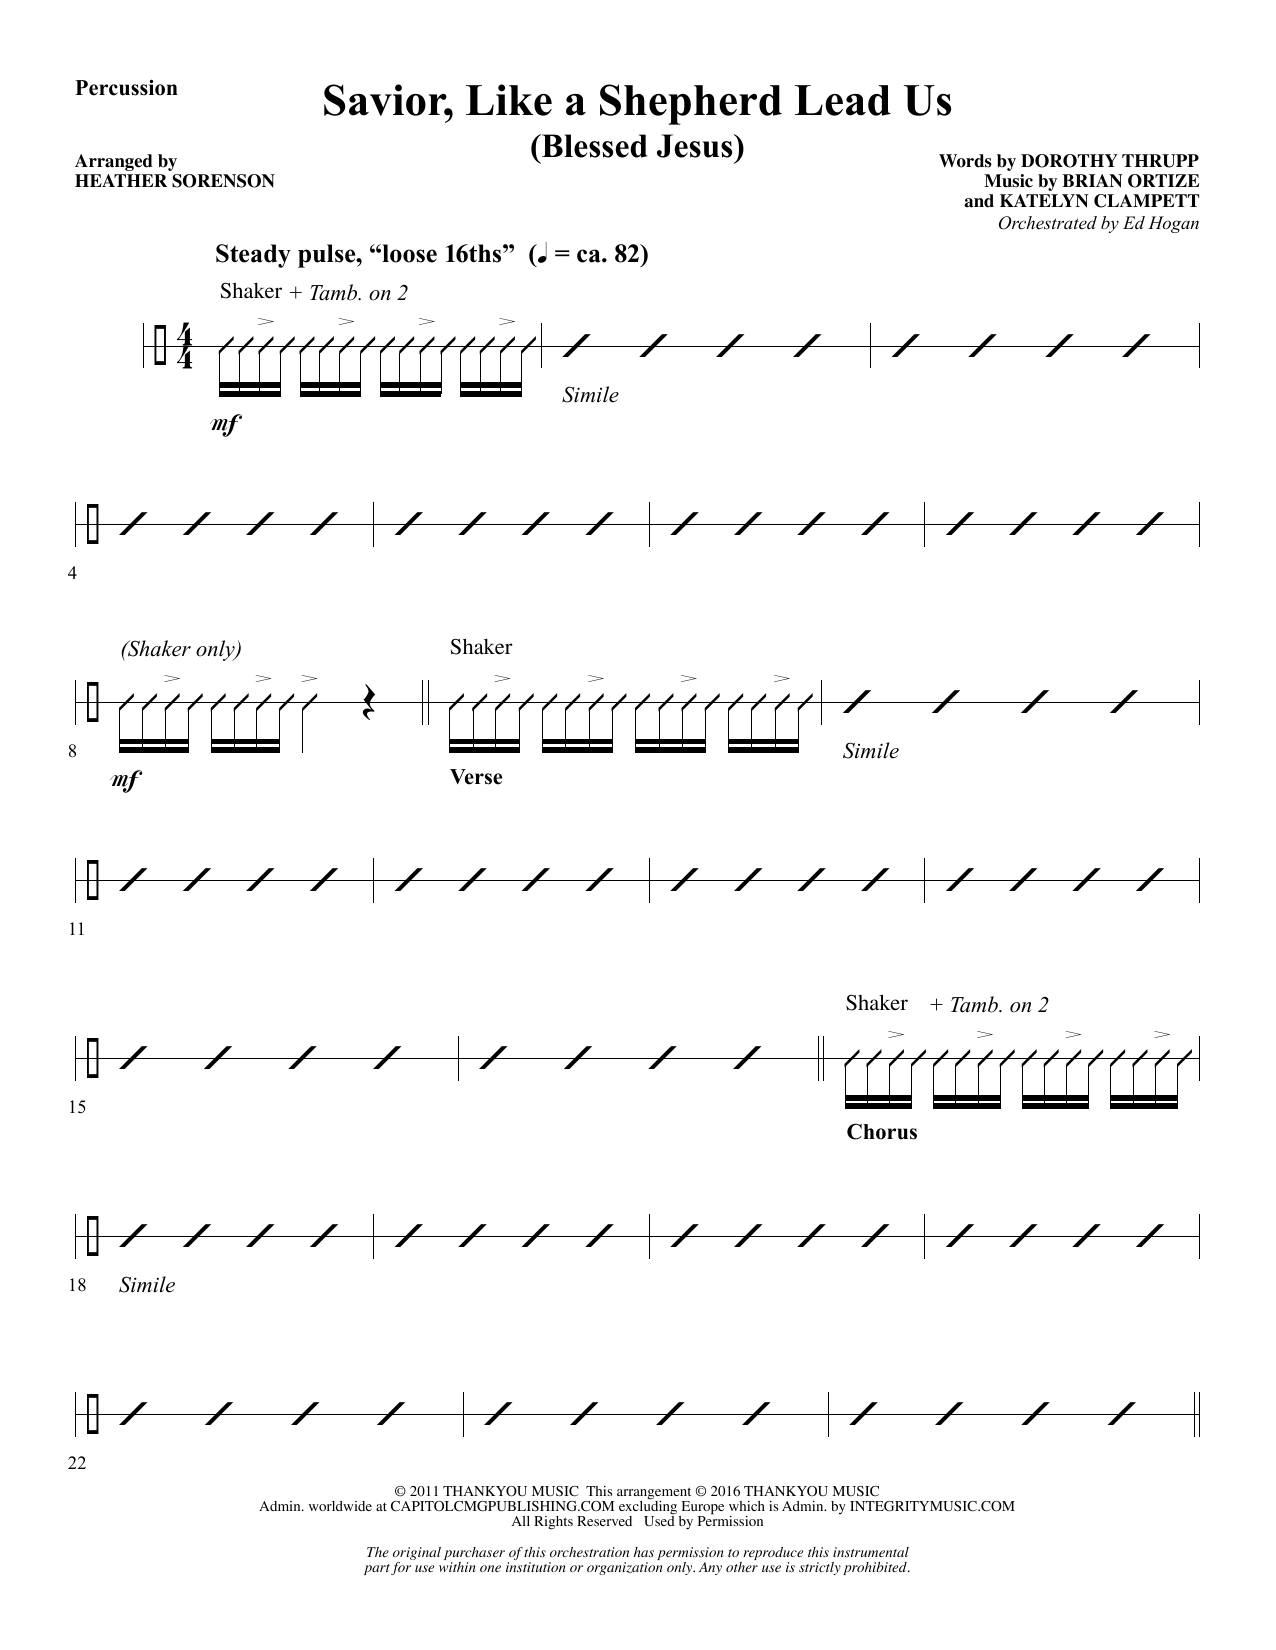 Savior, Like a Shepherd Lead Us (Blessed Jesus) - Percussion Sheet Music